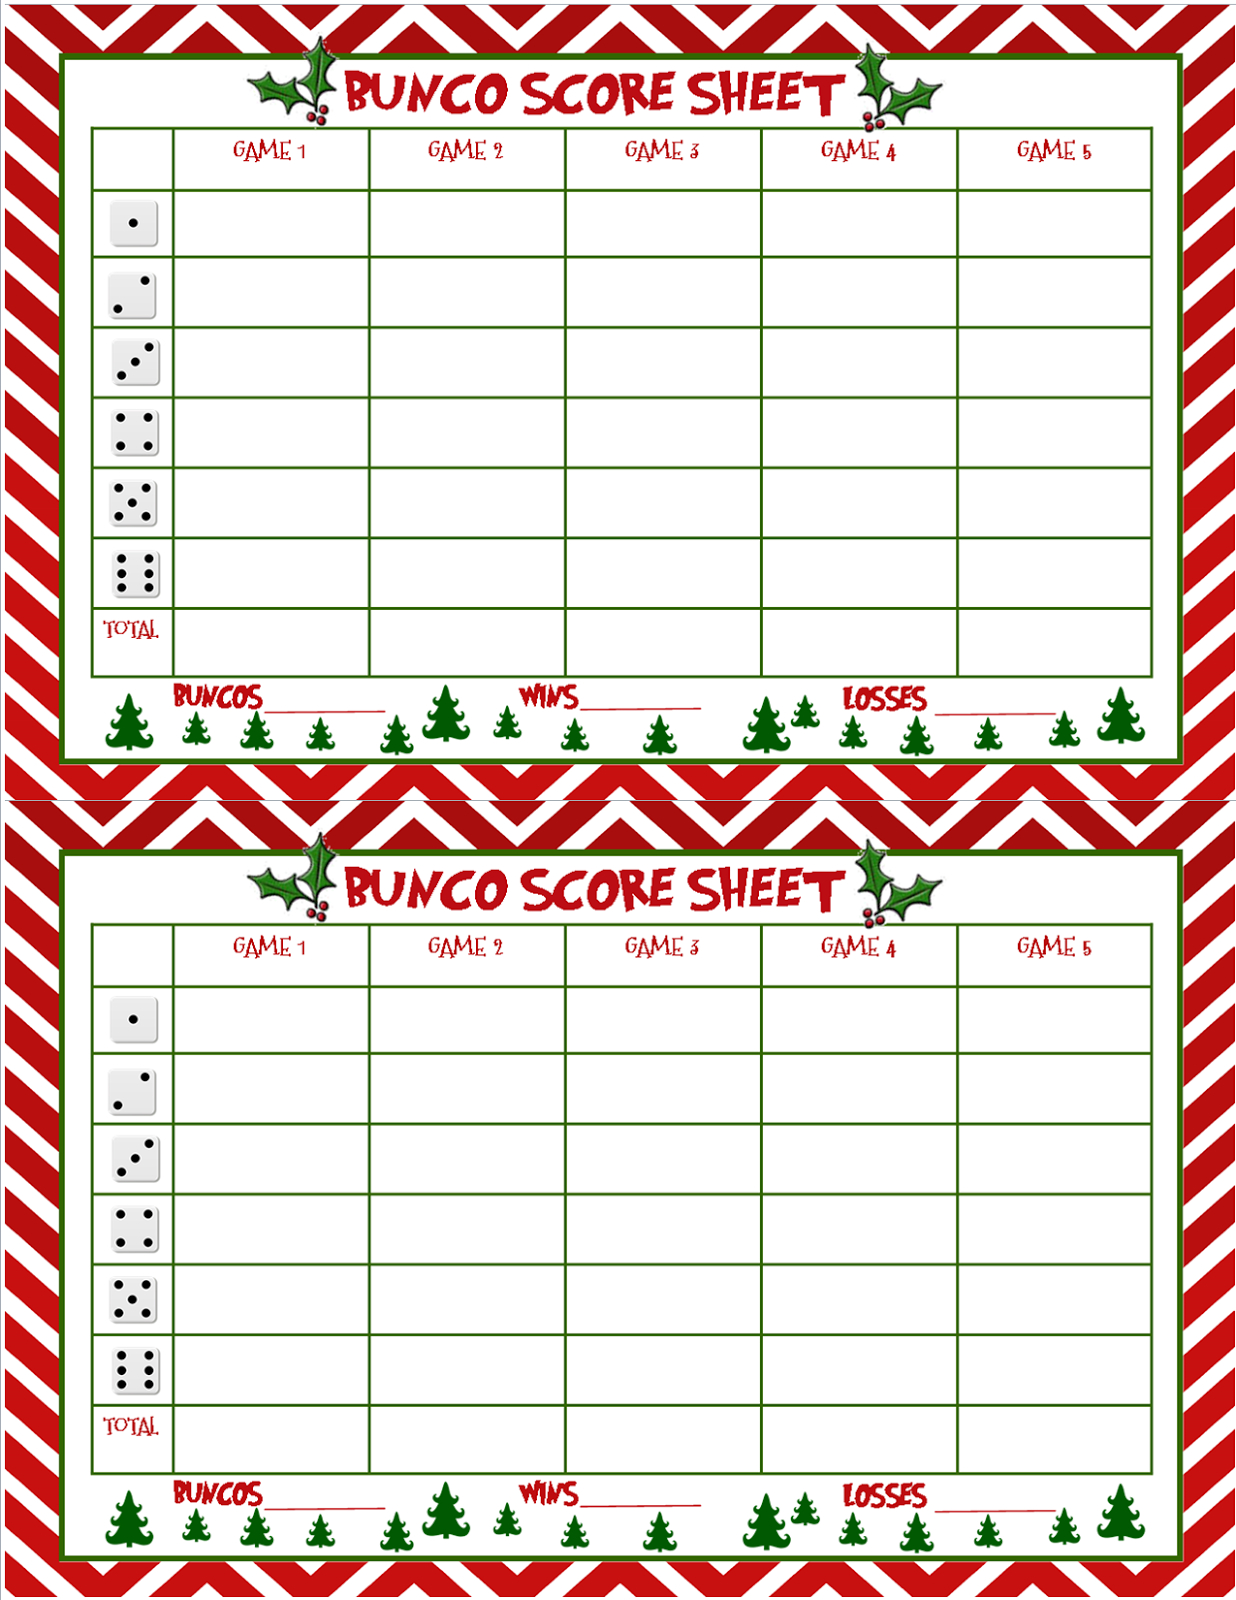 I Seemed To Have Skipped Making A Bunco Score Sheet For Thanksgiving - Free Printable Halloween Bunco Score Sheets